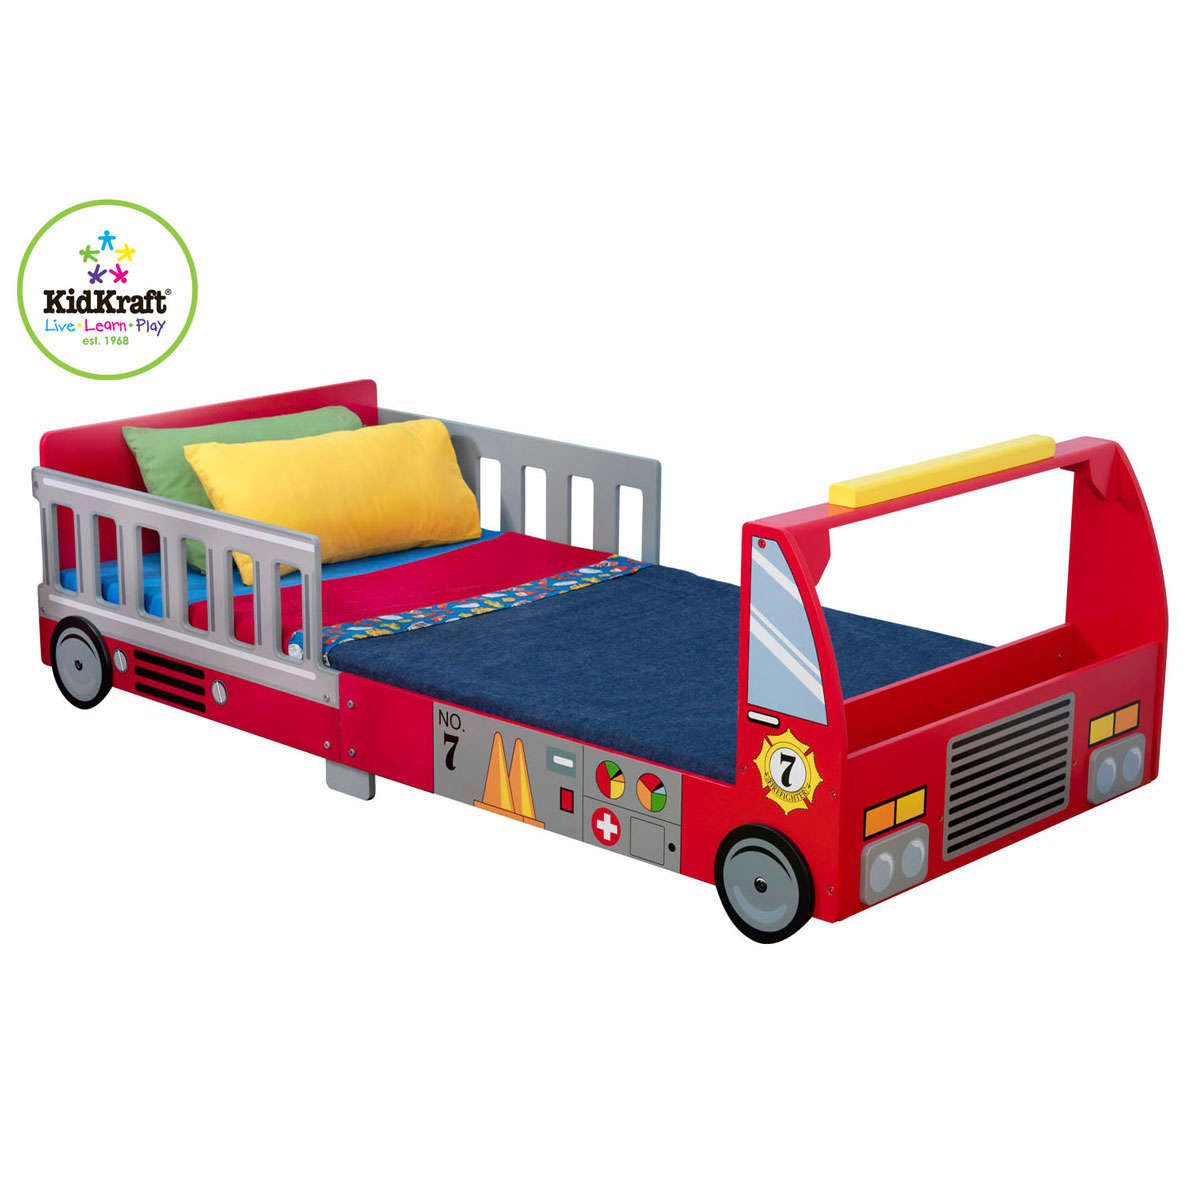 kidkraft 76031 kinderbett feuerwehr solides feuerwehr kinderbett. Black Bedroom Furniture Sets. Home Design Ideas